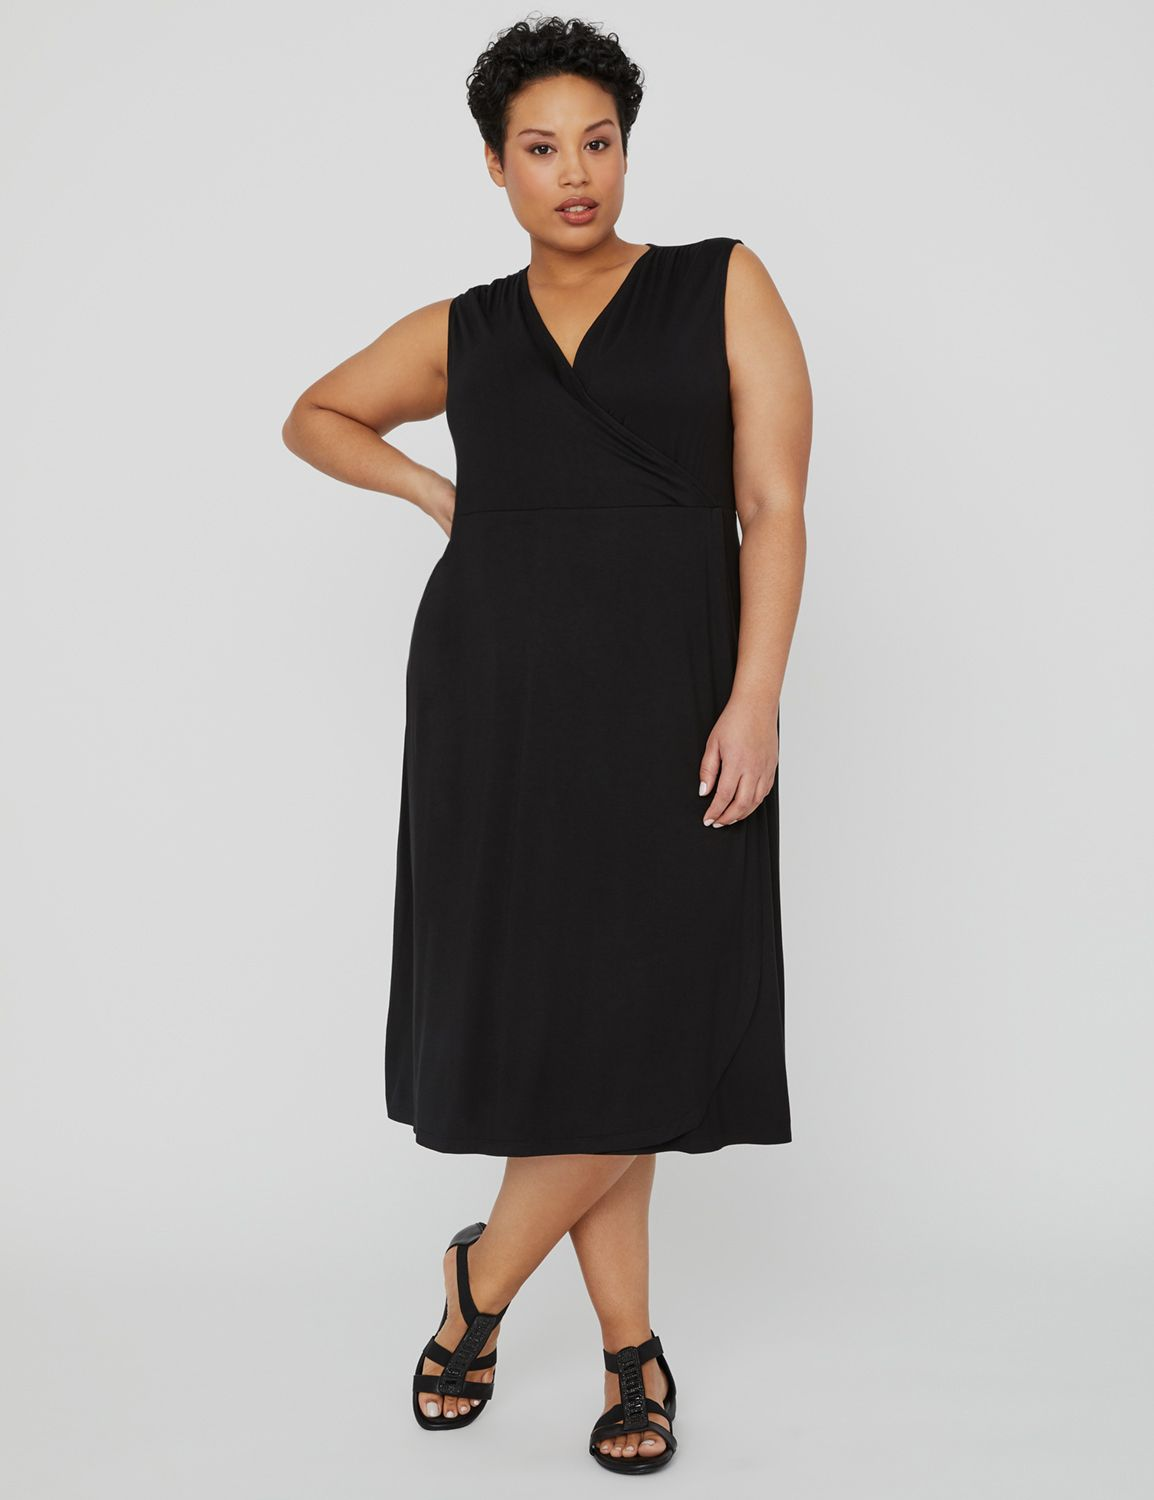 Riverview Wrap Dress 1088151 Vneck Front and Back Maxi E MP-300102448